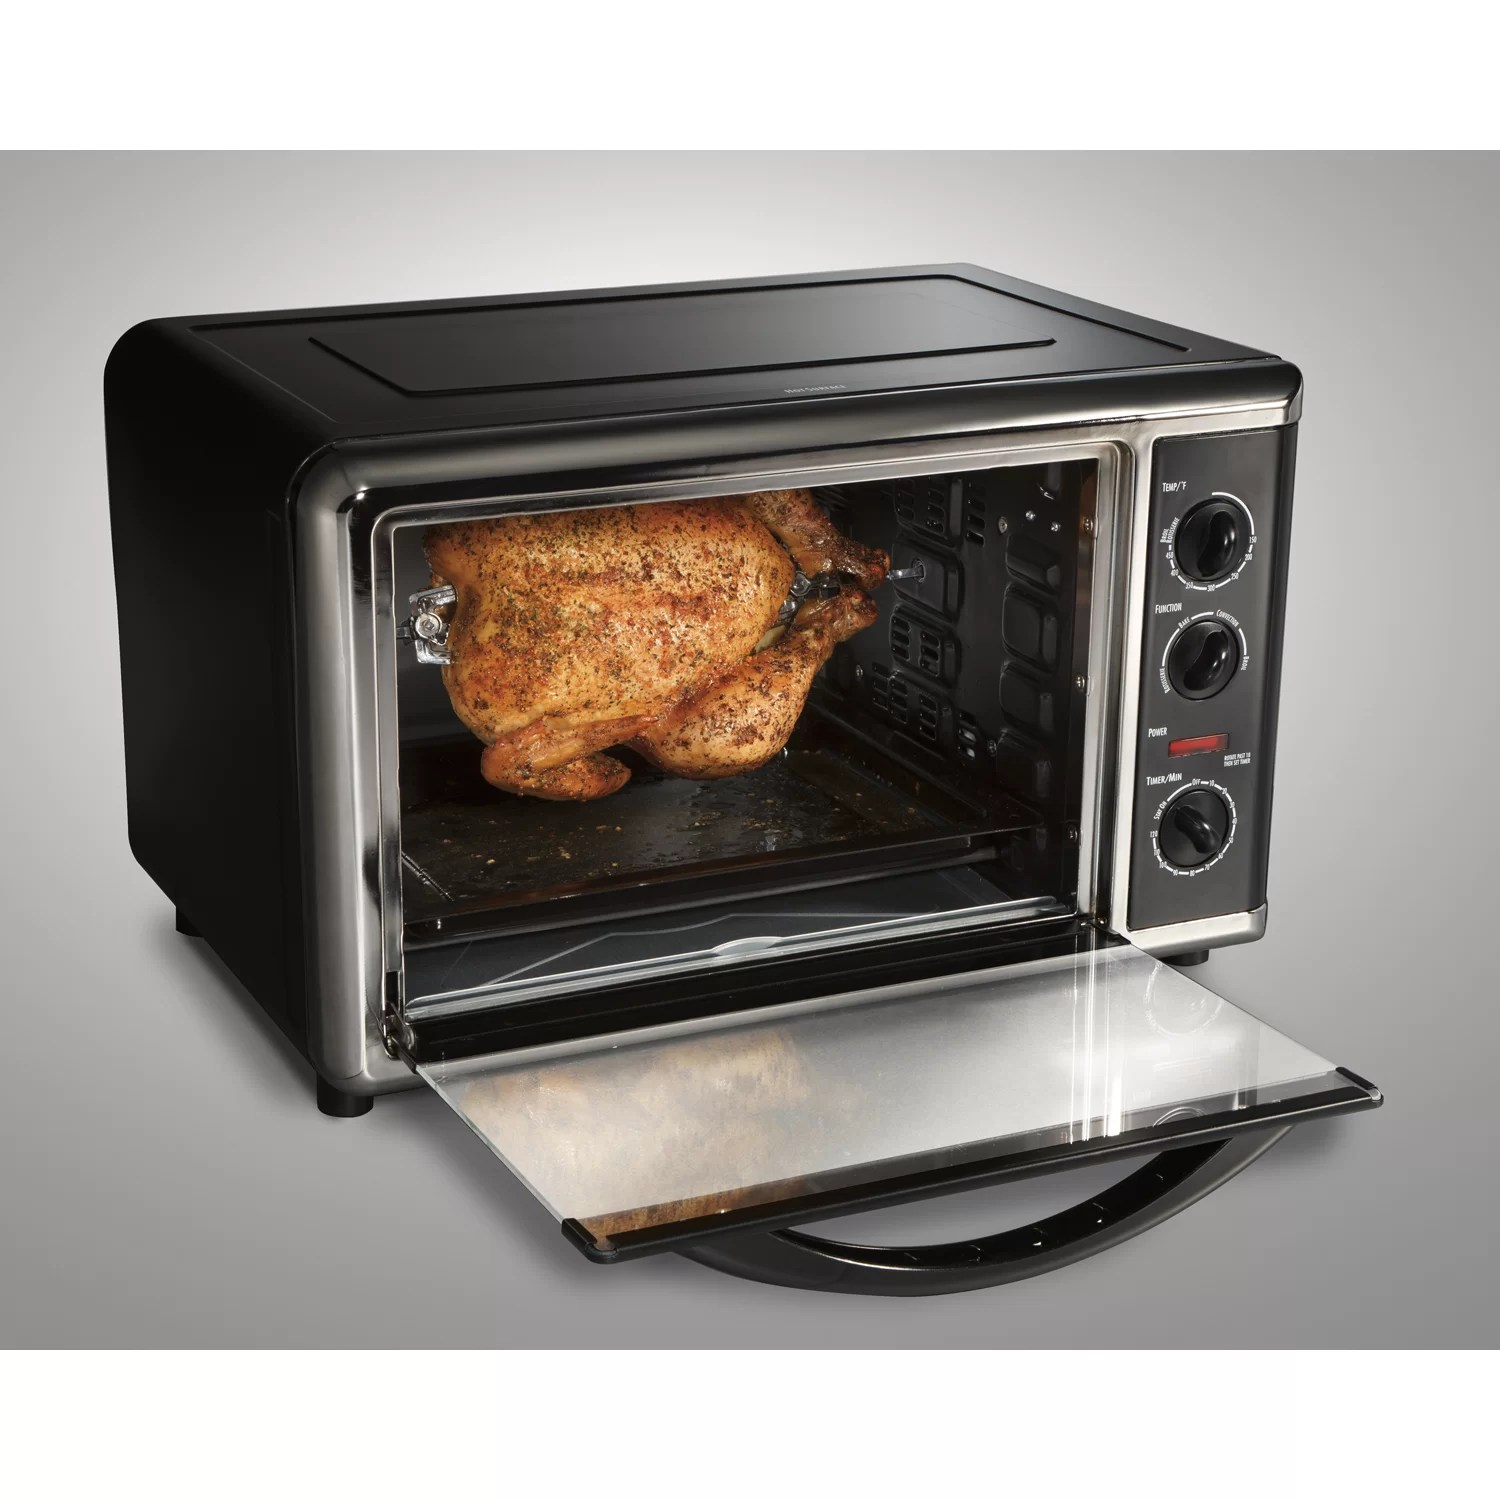 Countertop Rotisserie Ovens Hamilton Beach Countertop Convection And Rotisserie Oven